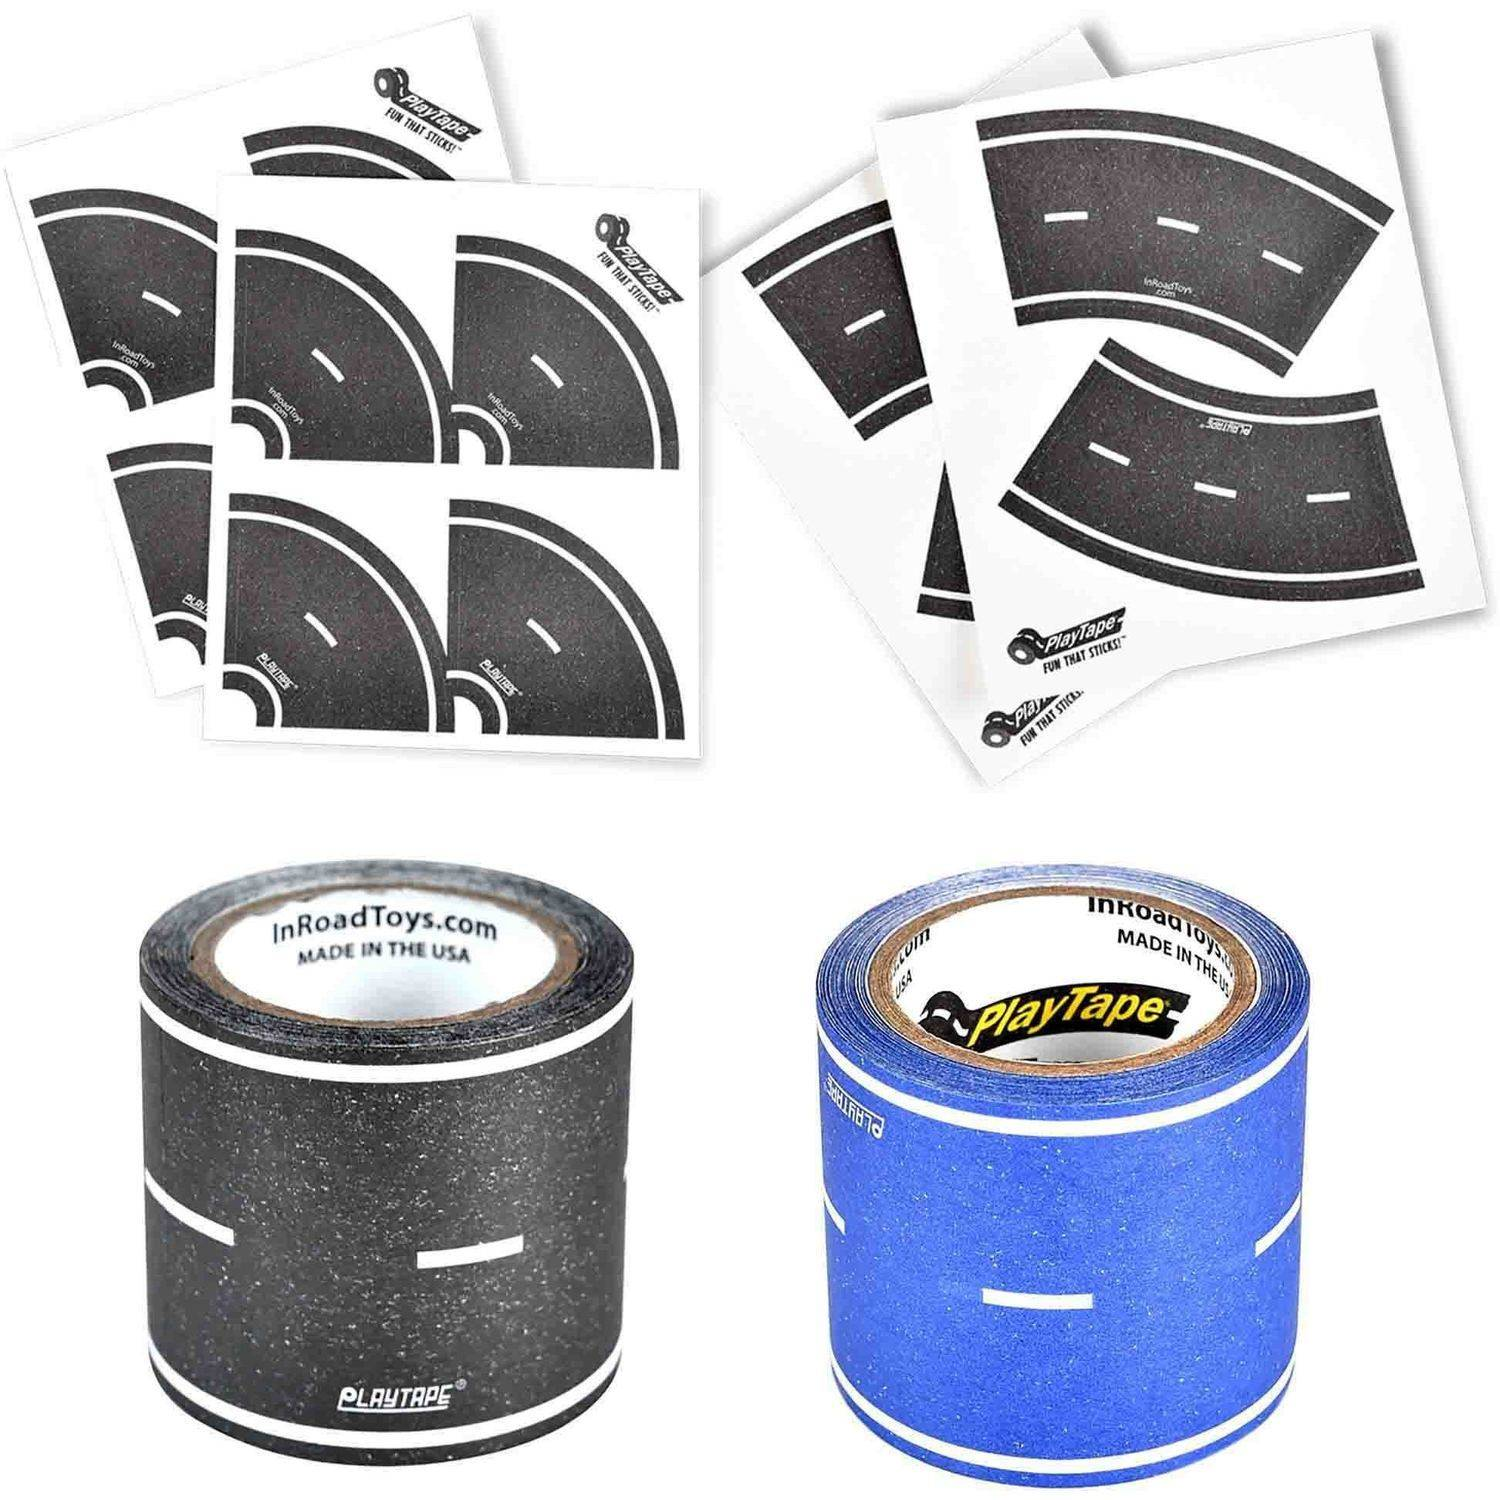 "PlayTape Classic Road Series 30' x 2"" Road Bundle with 8 Tight Curves and 4 Broad Curves, Black and Blue"